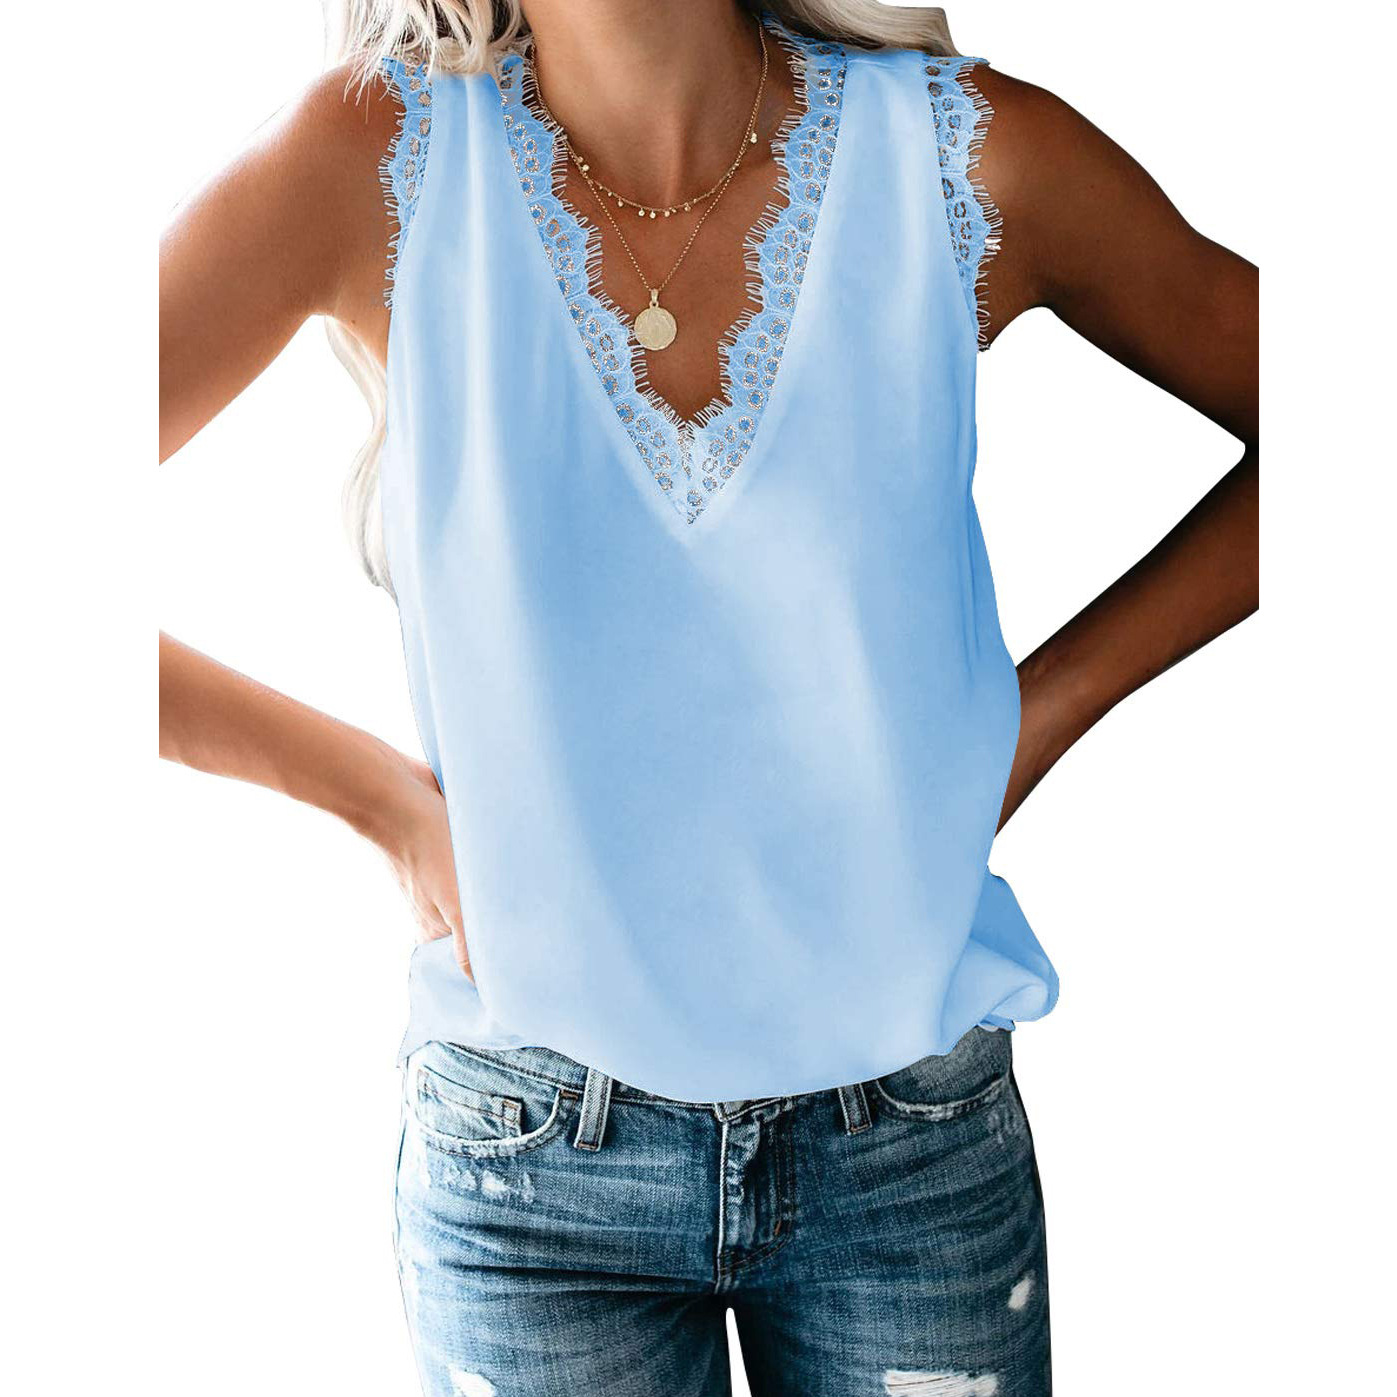 NEW! Western Style Lacey Sleeveless Top for Ladies